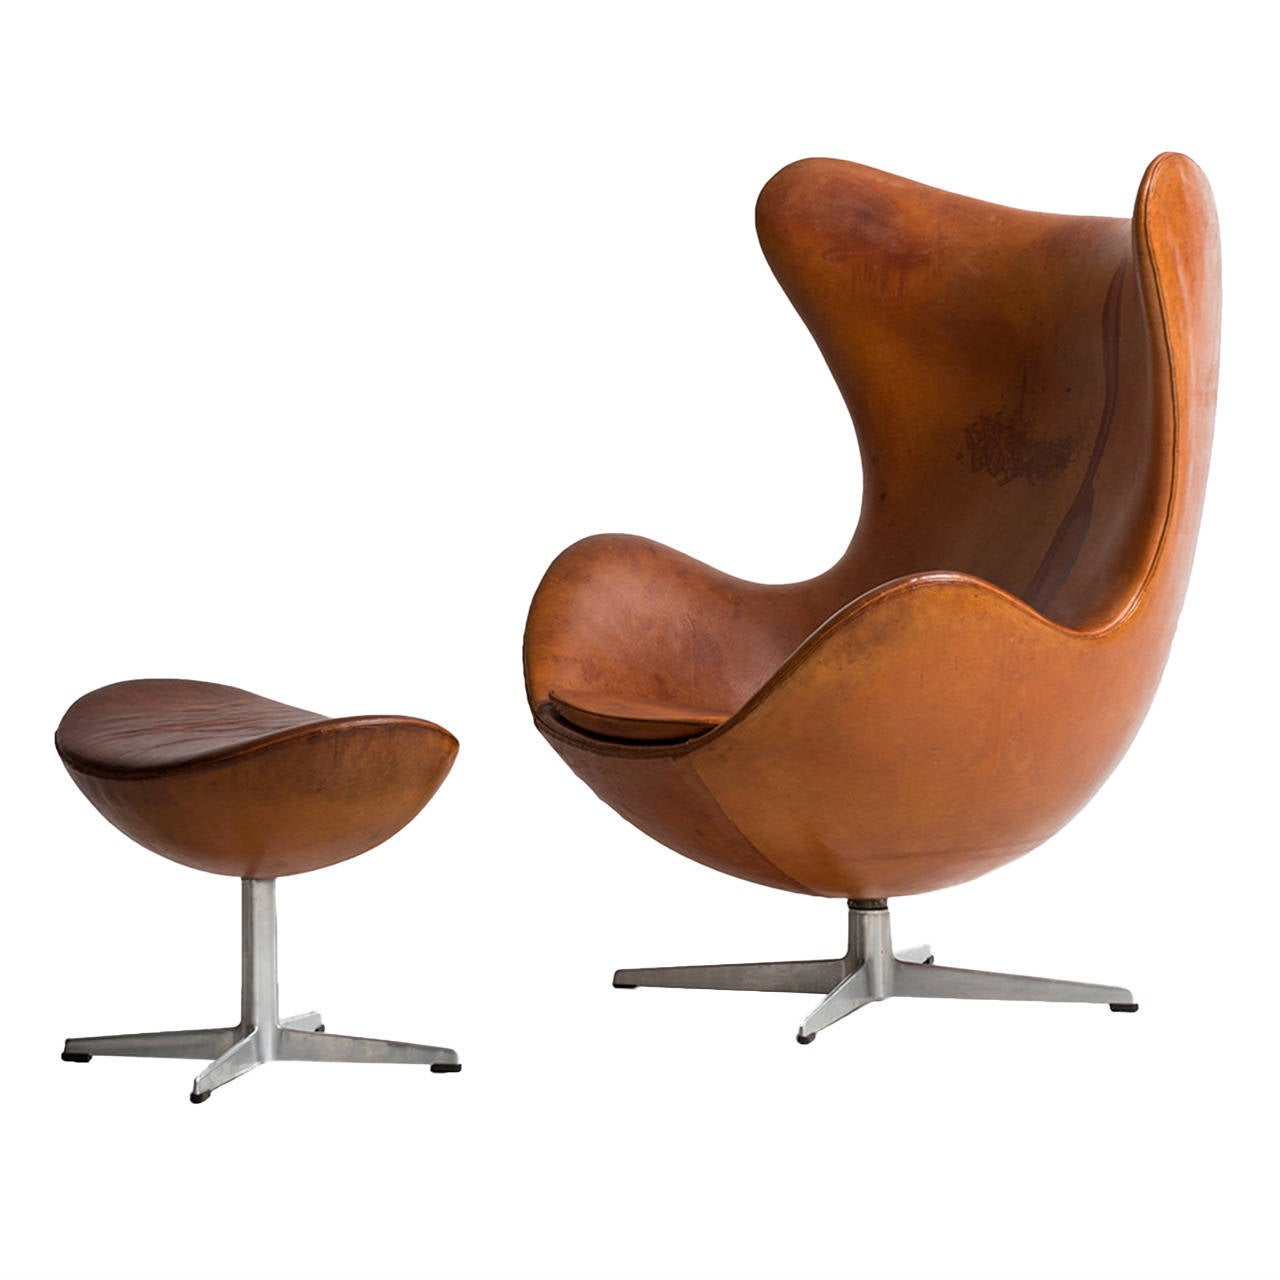 Arne jacobsen egg chair leather - Arne Jacobsen Egg Chair In Original Cognac Brown Leather By Fritz Hansen 1